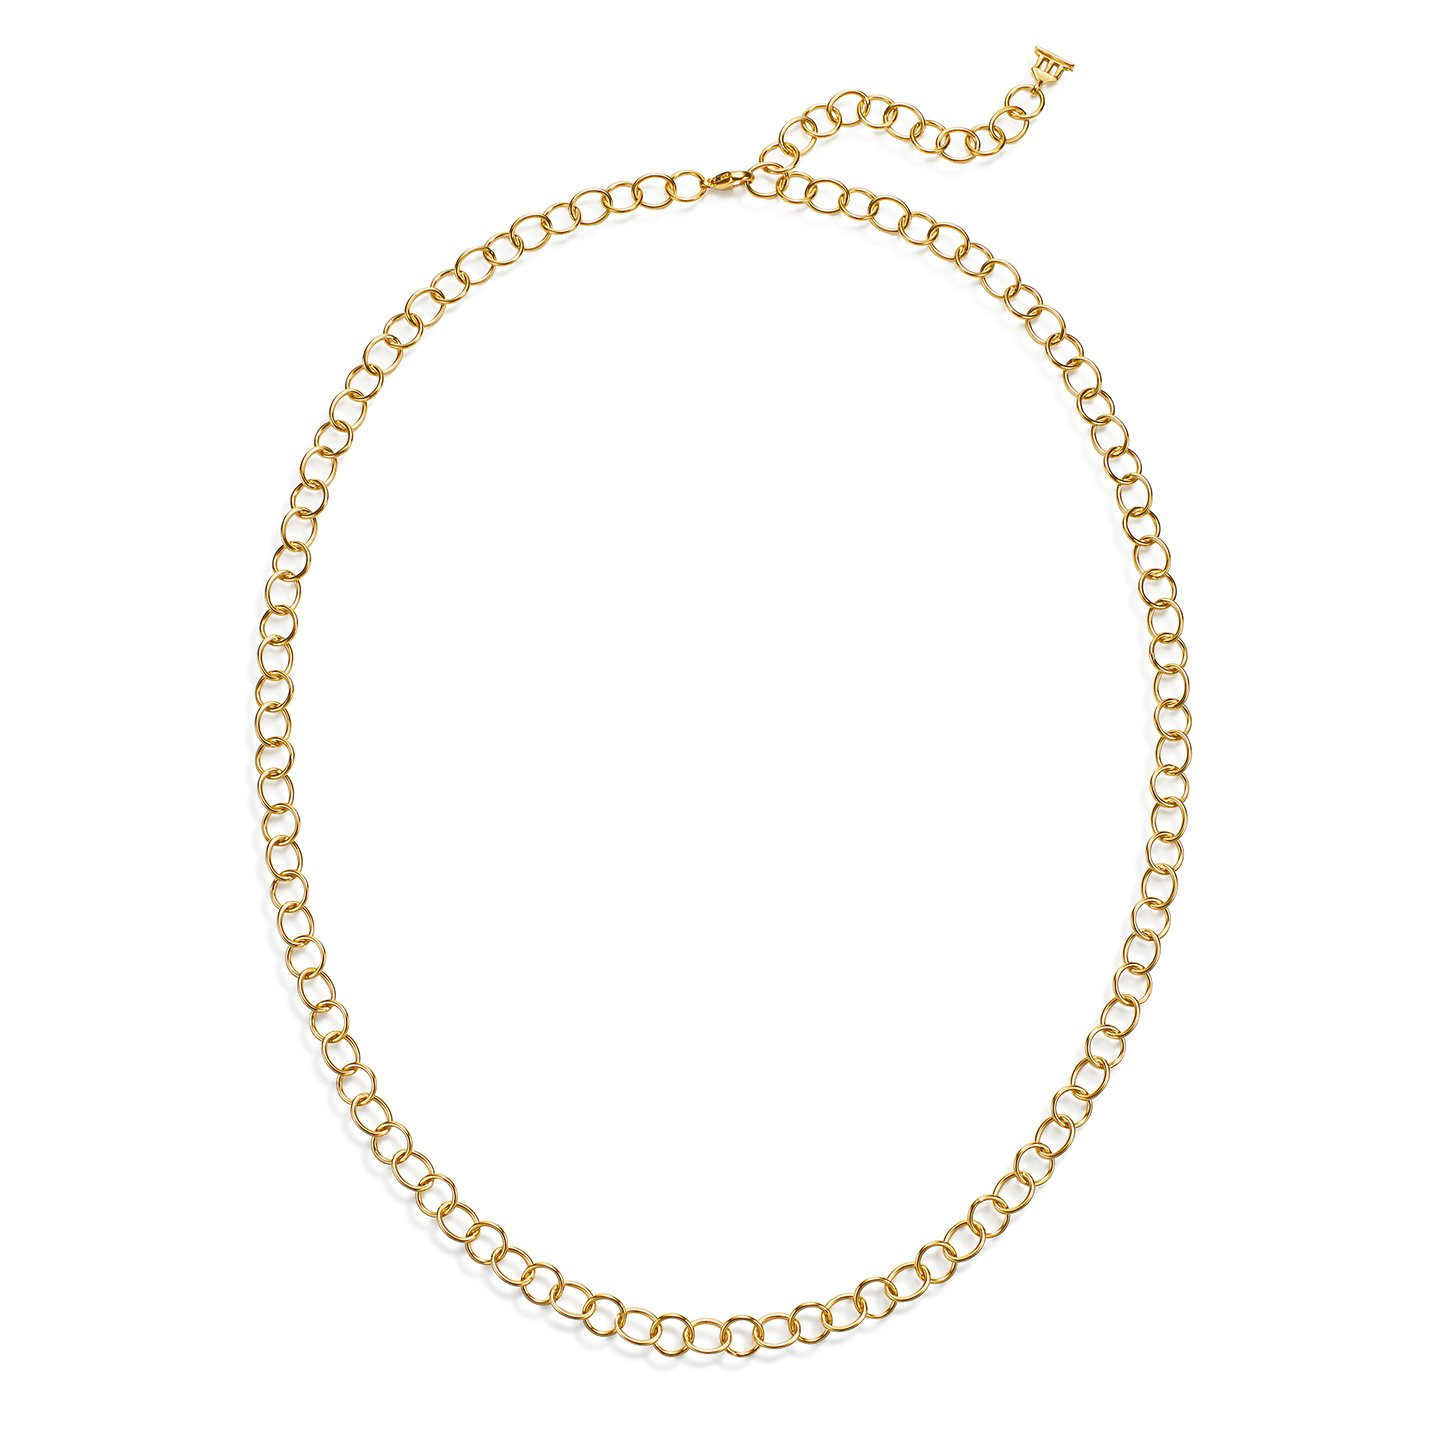 Temple St. Clair 18K Yellow Gold    Gold Chains N88810-ARNO24